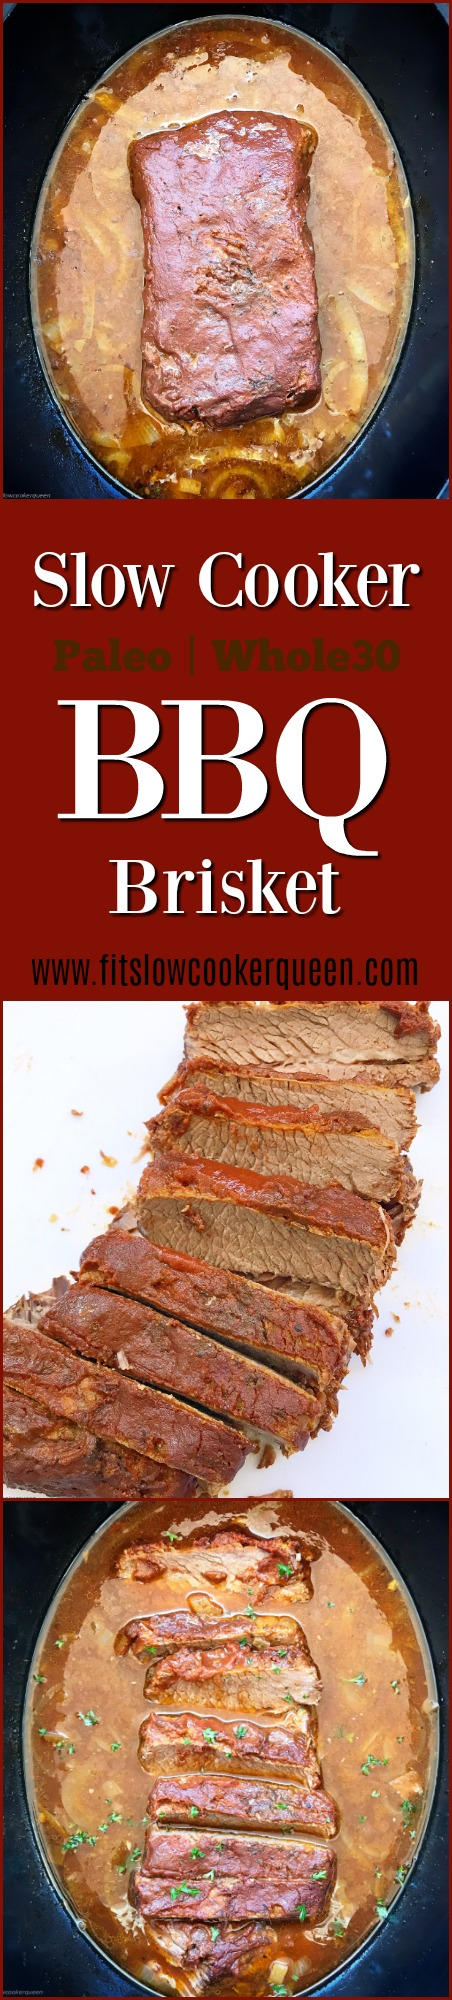 This simple BBQ brisket recipe uses a homemade, tangy sauce that's both paleo and whole30 compliant. Brisket is usually made on the barbecue but this tough yet delicious cut of meat is also perfect for the low & slow cooking method of the slow cooker.